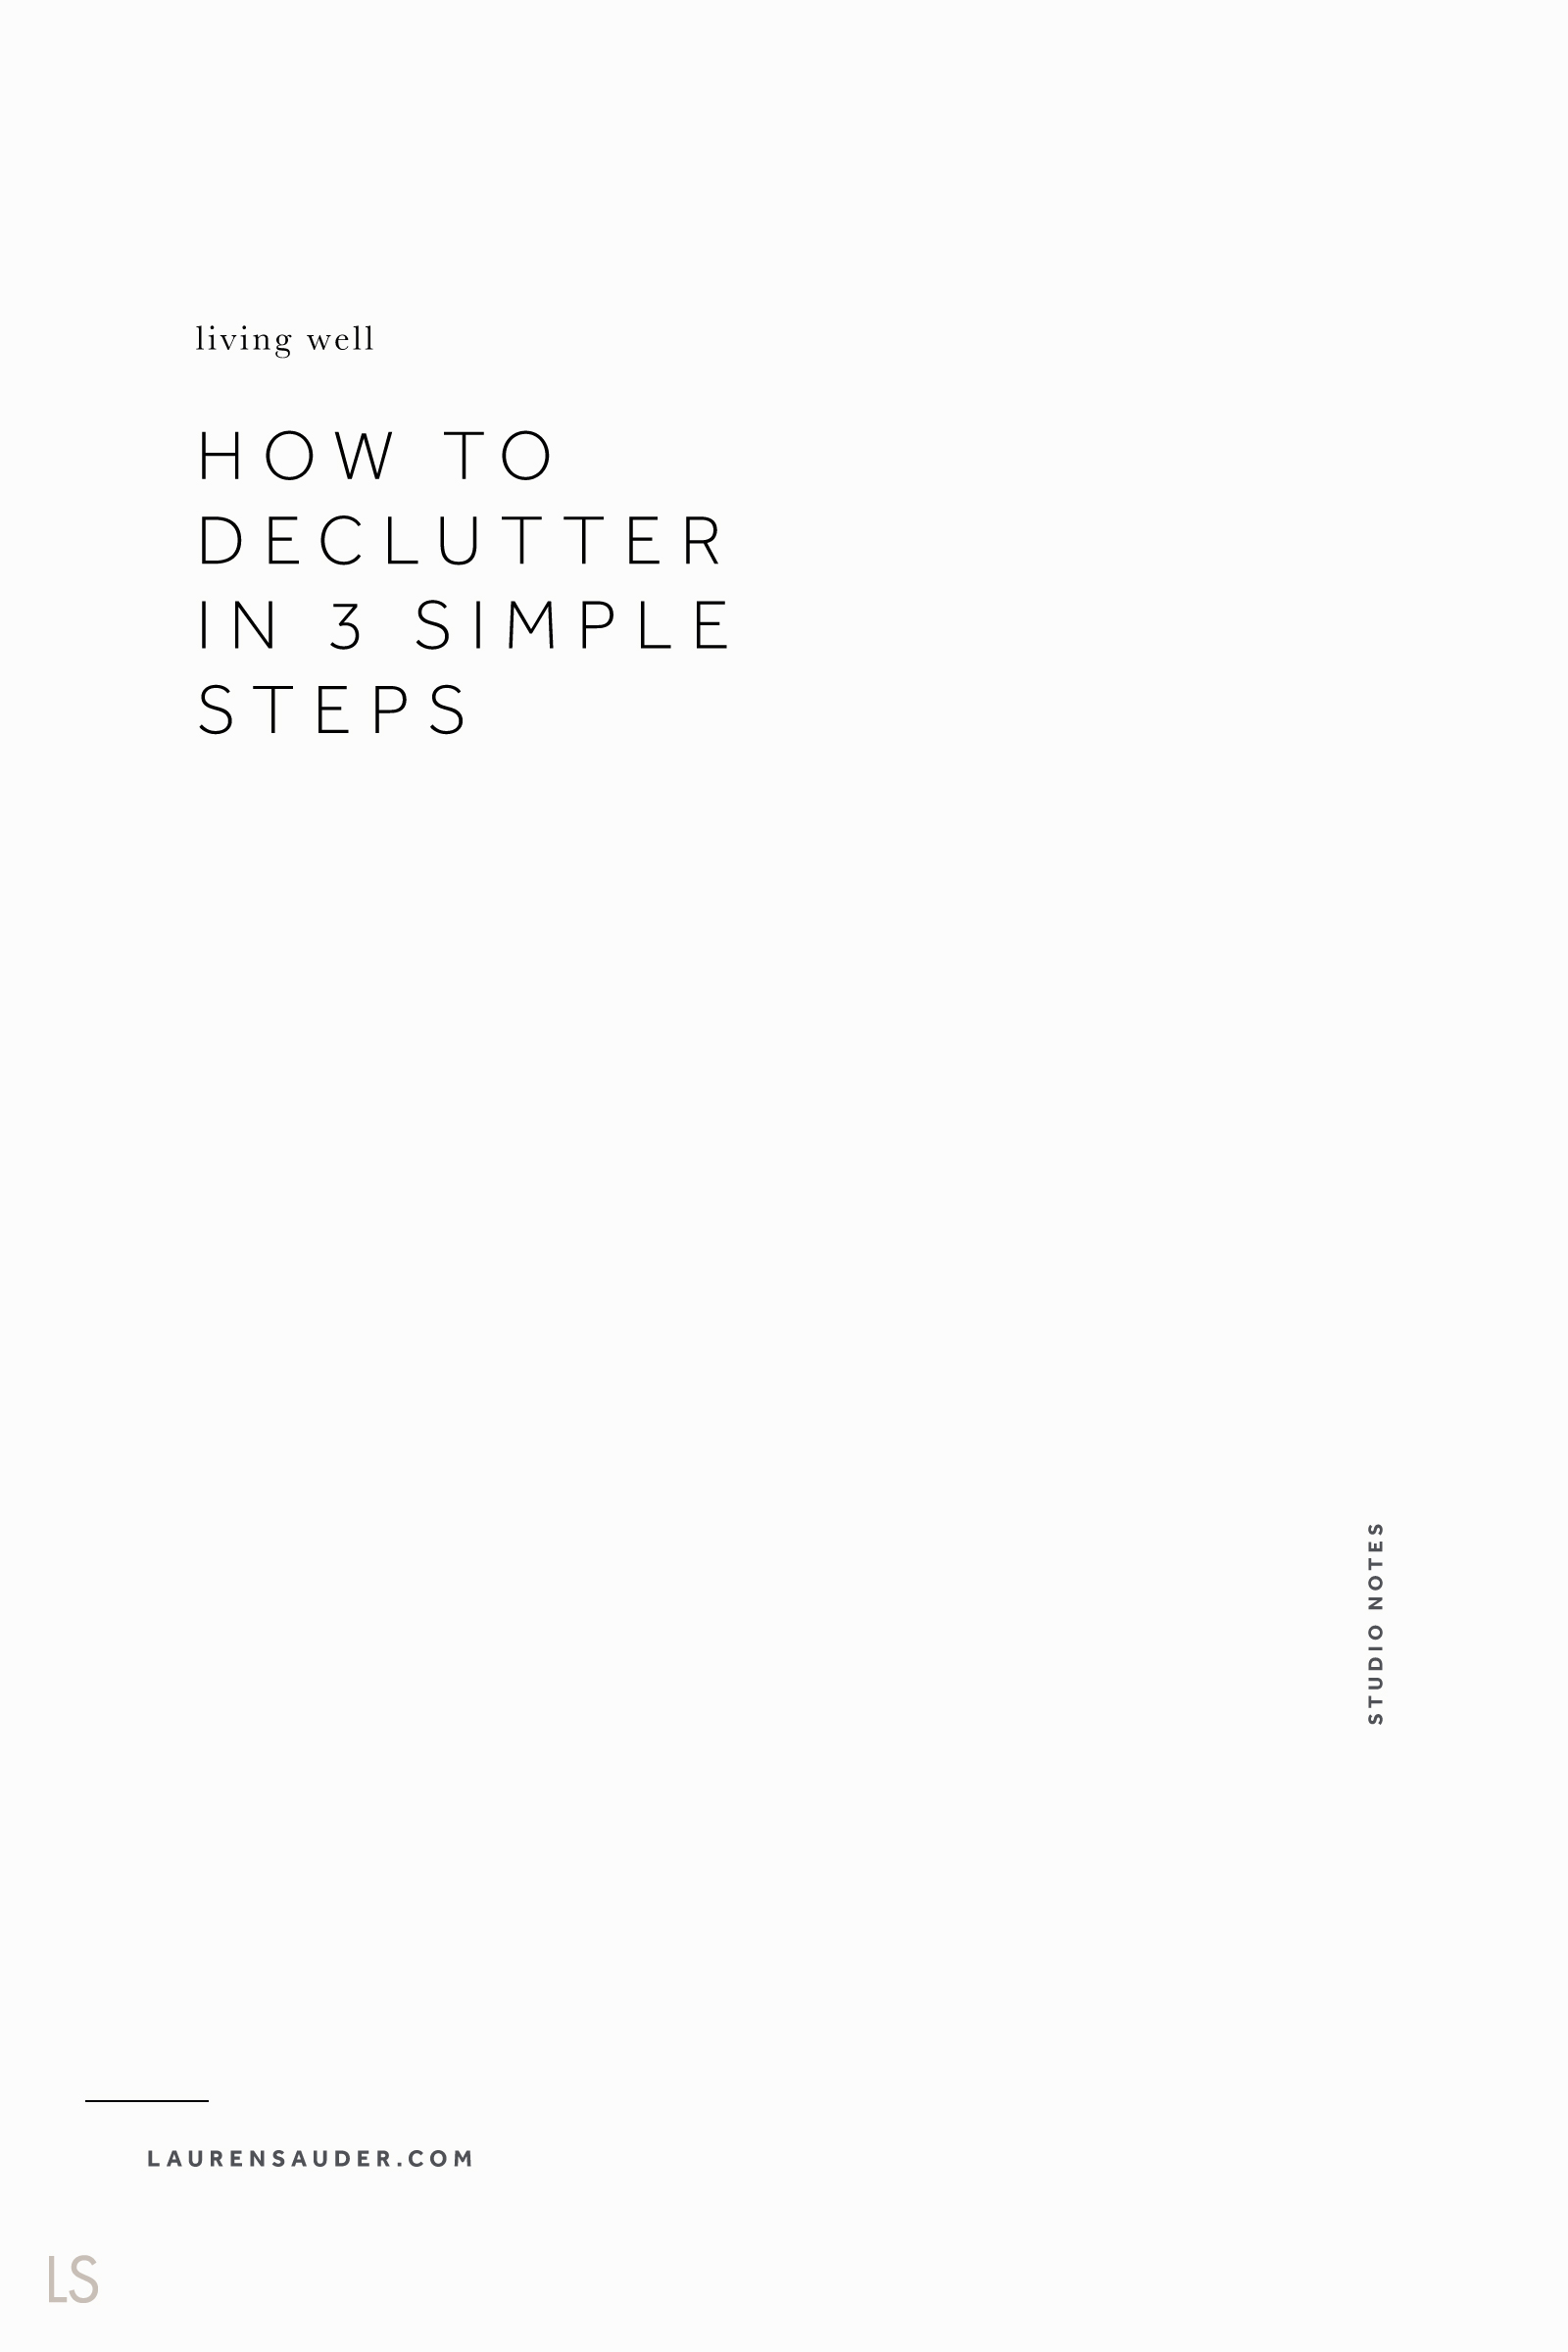 How to Declutter in 3 Simple Steps - Lauren Sauder #declutter #springcleaning #simplehome minimal living, simple living, minimalism, slow living, declutter your space, spring cleaning, minimal home, clean up